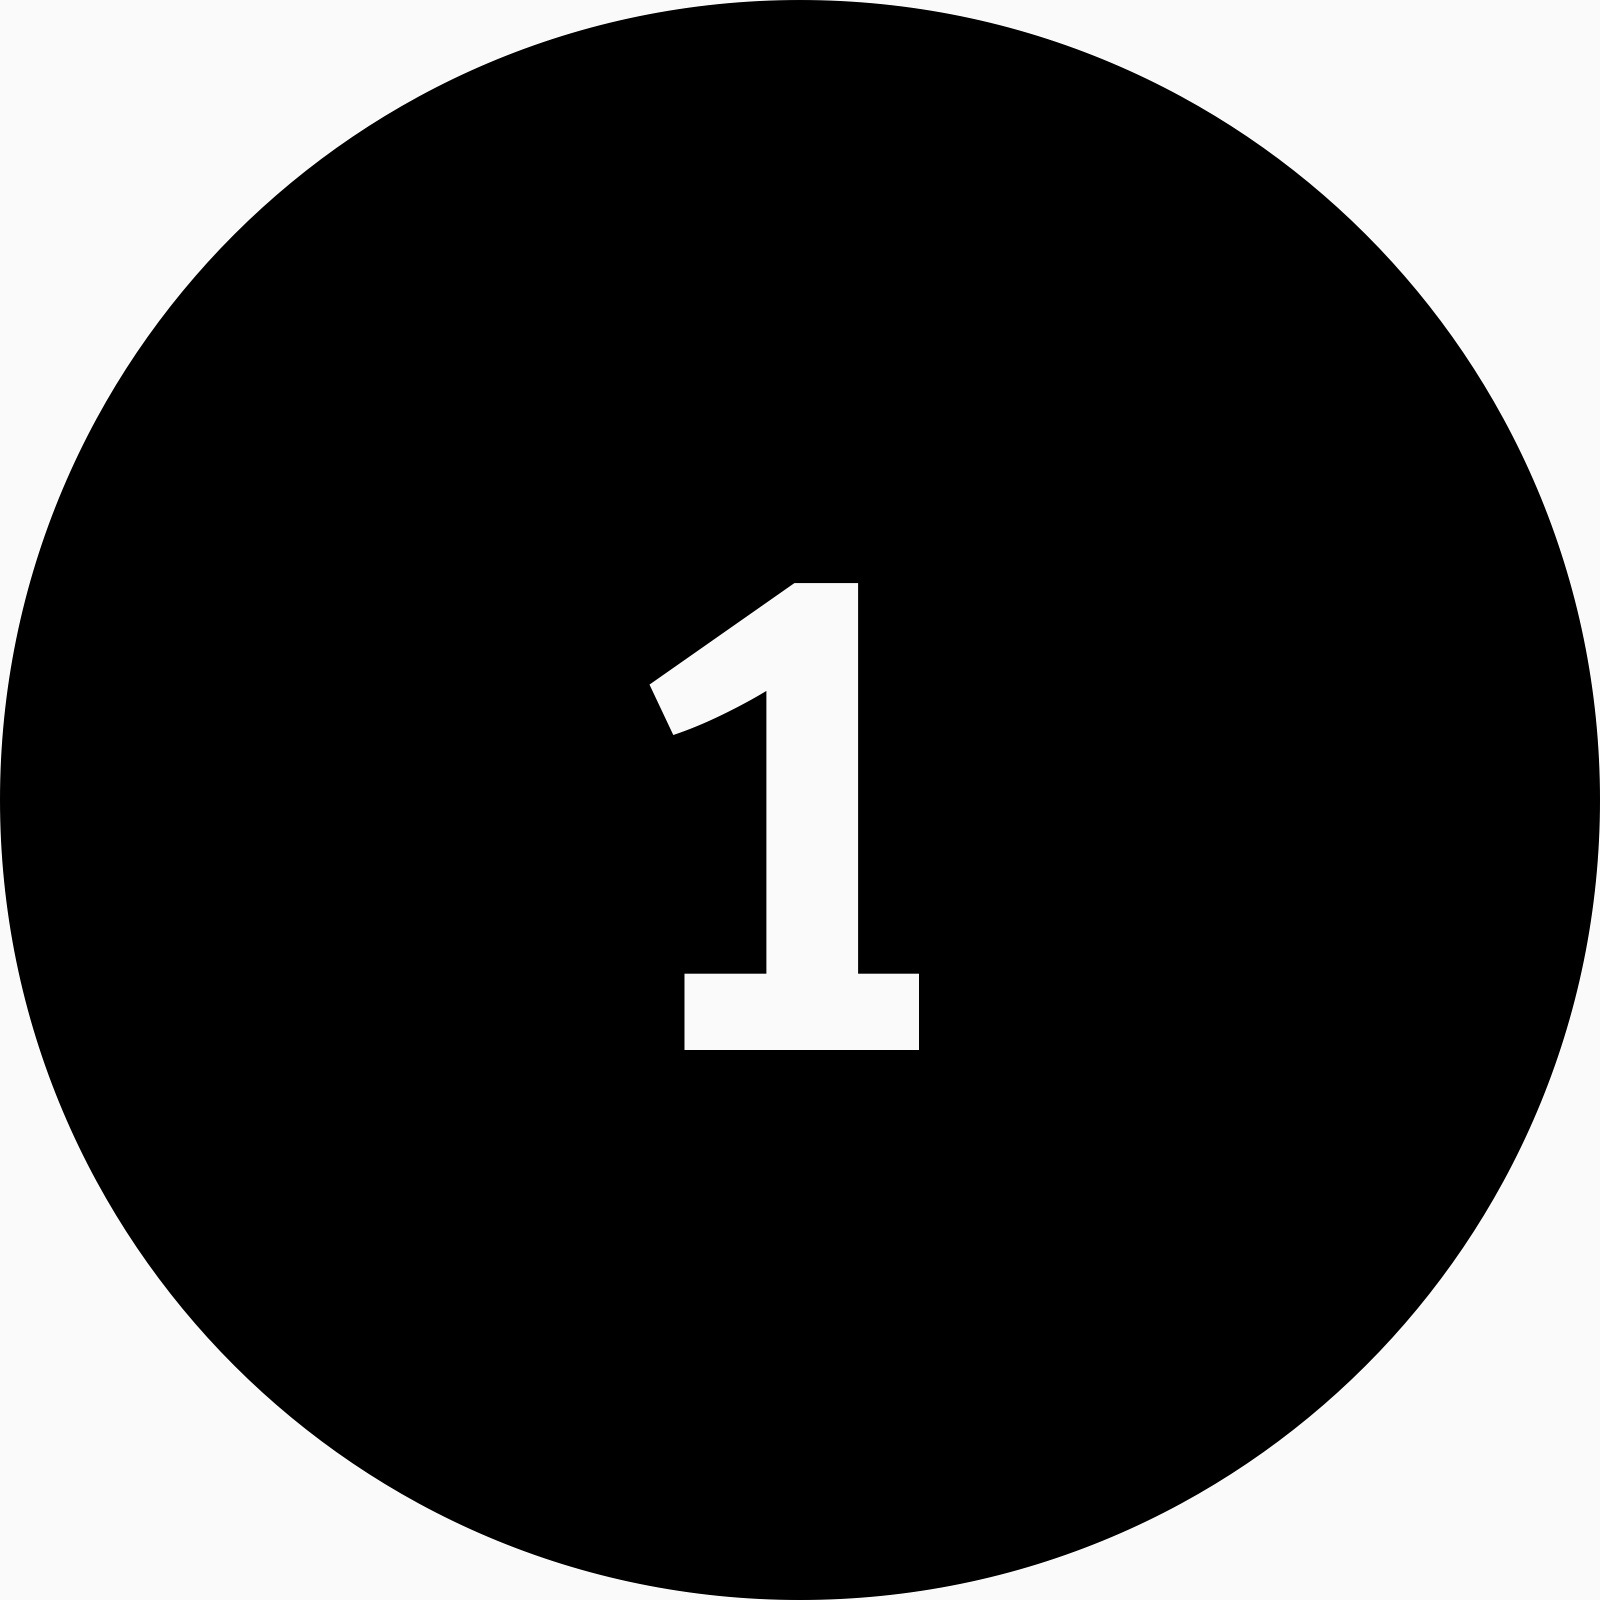 A black circle icon with the number one inside.